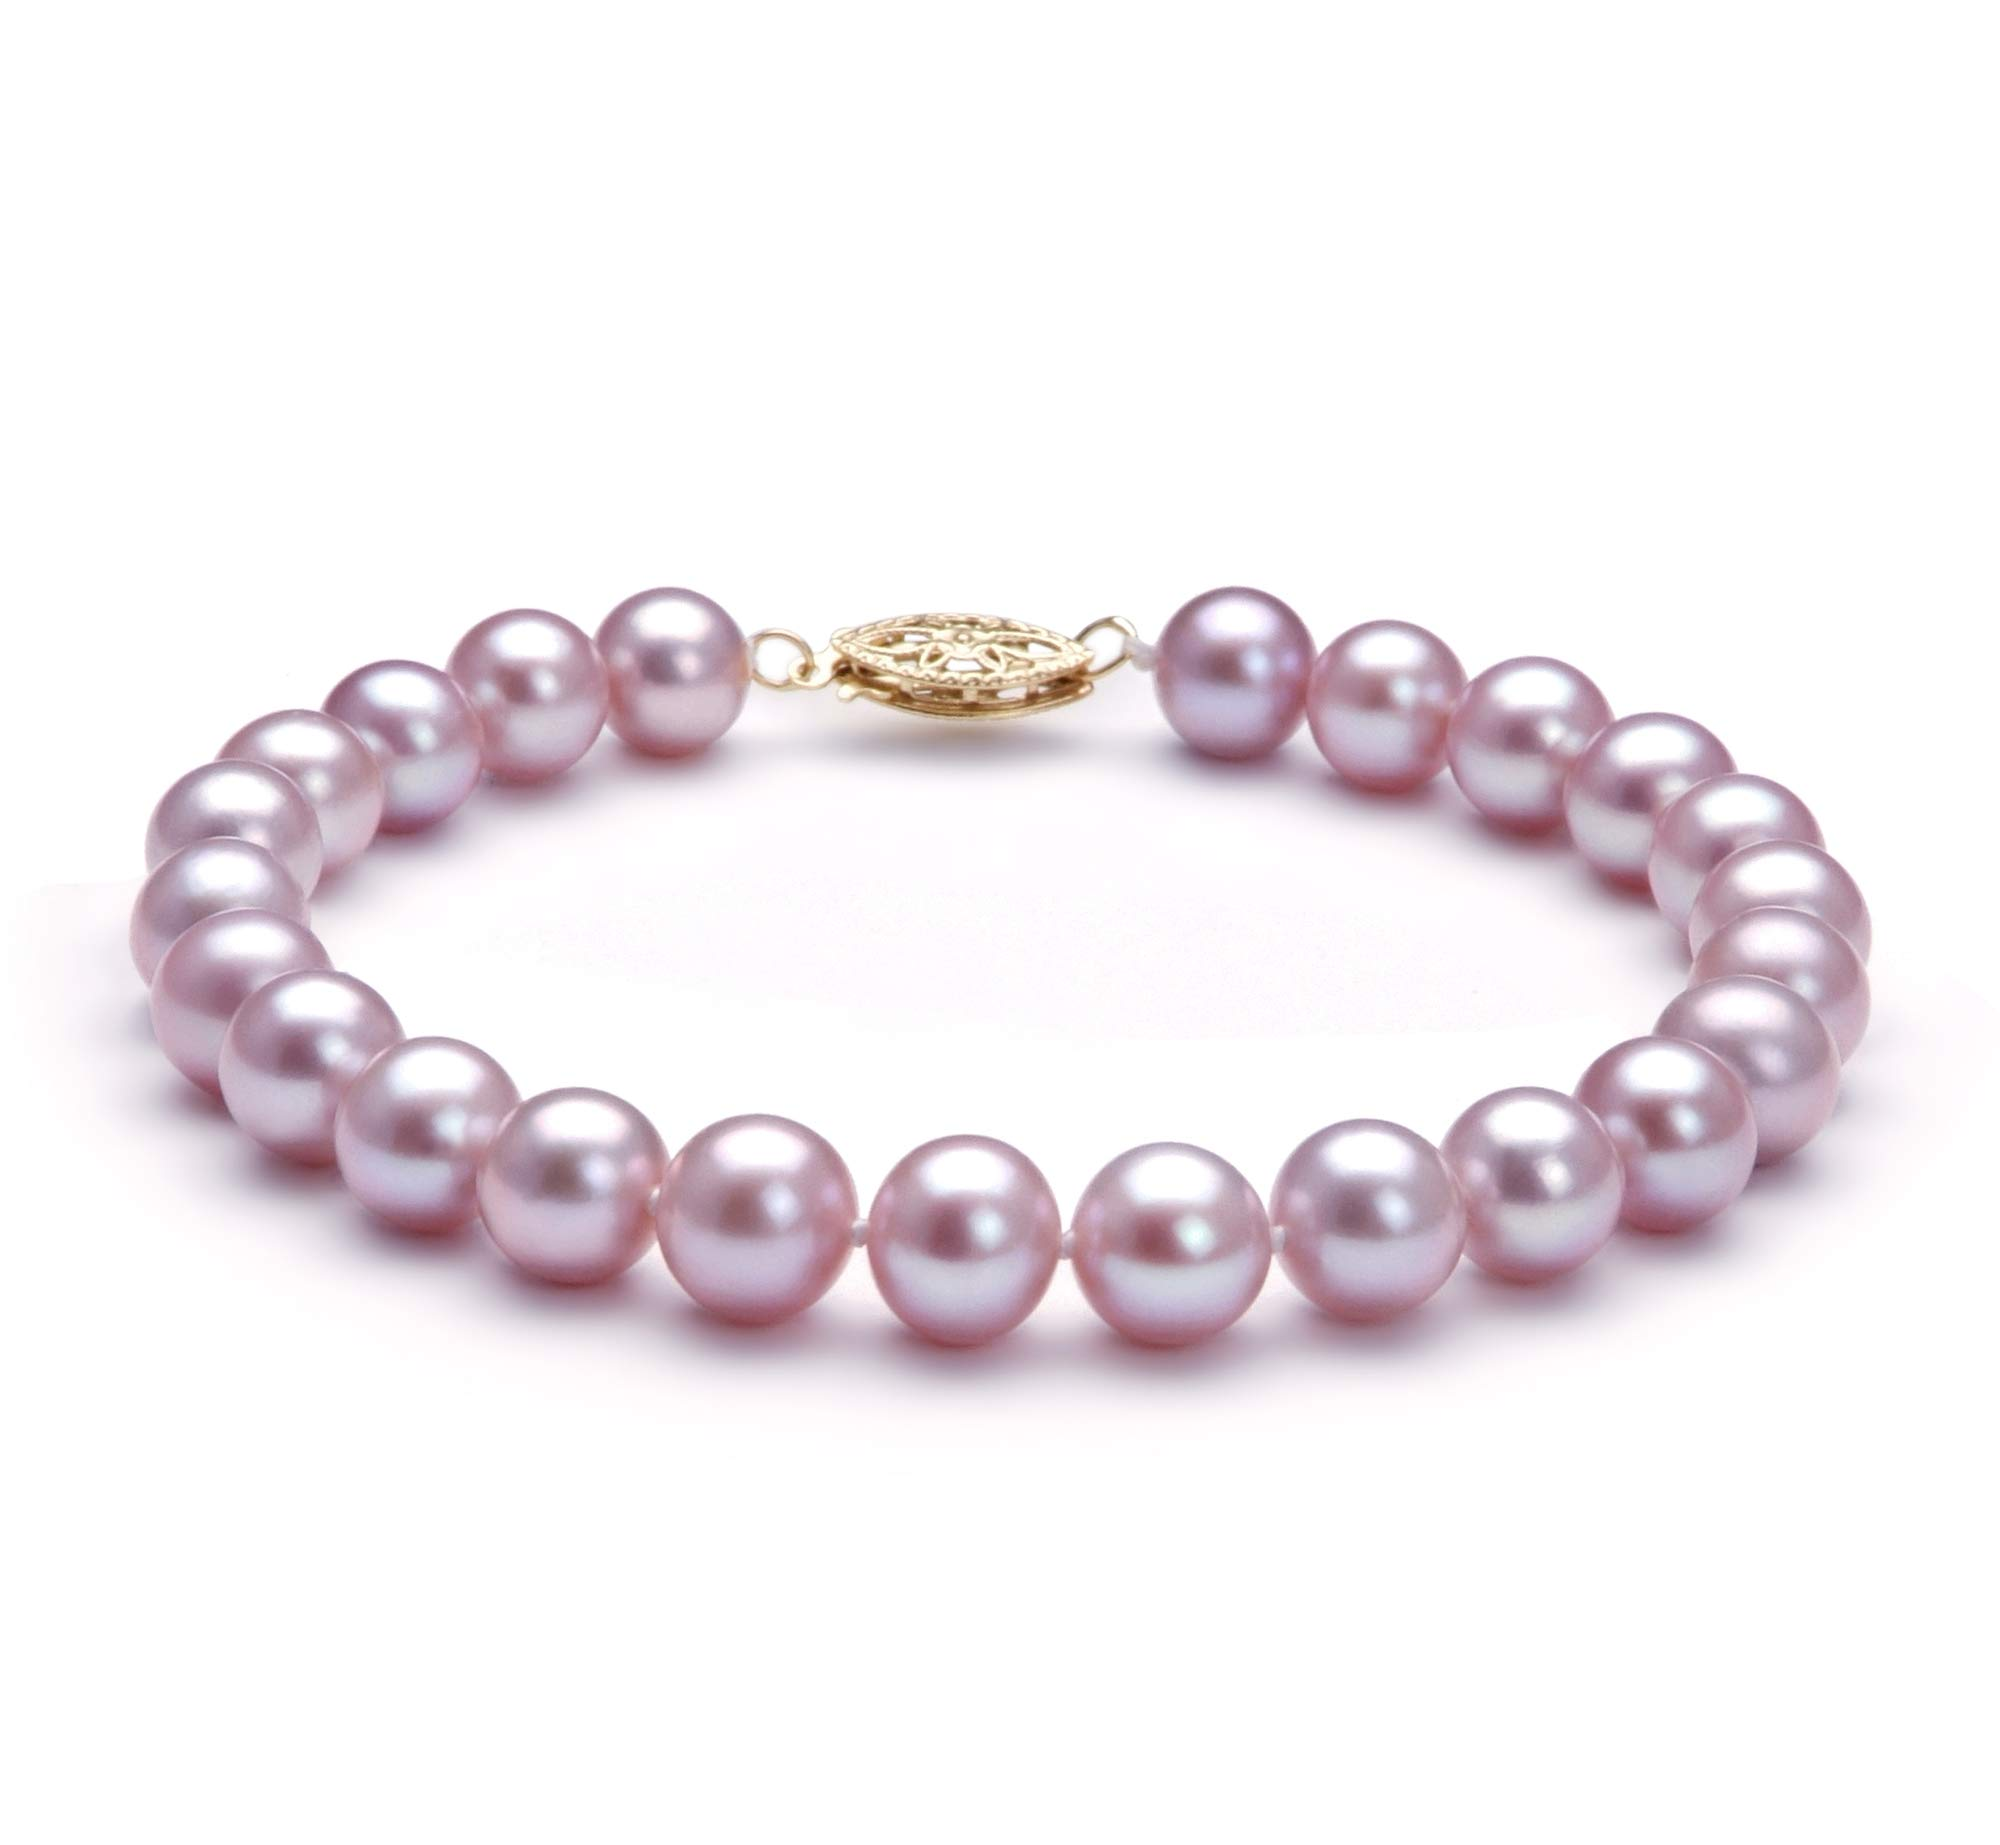 Lavender 7-8mm AA Quality Freshwater Cultured Pearl Bracelet for Women-7 in Length